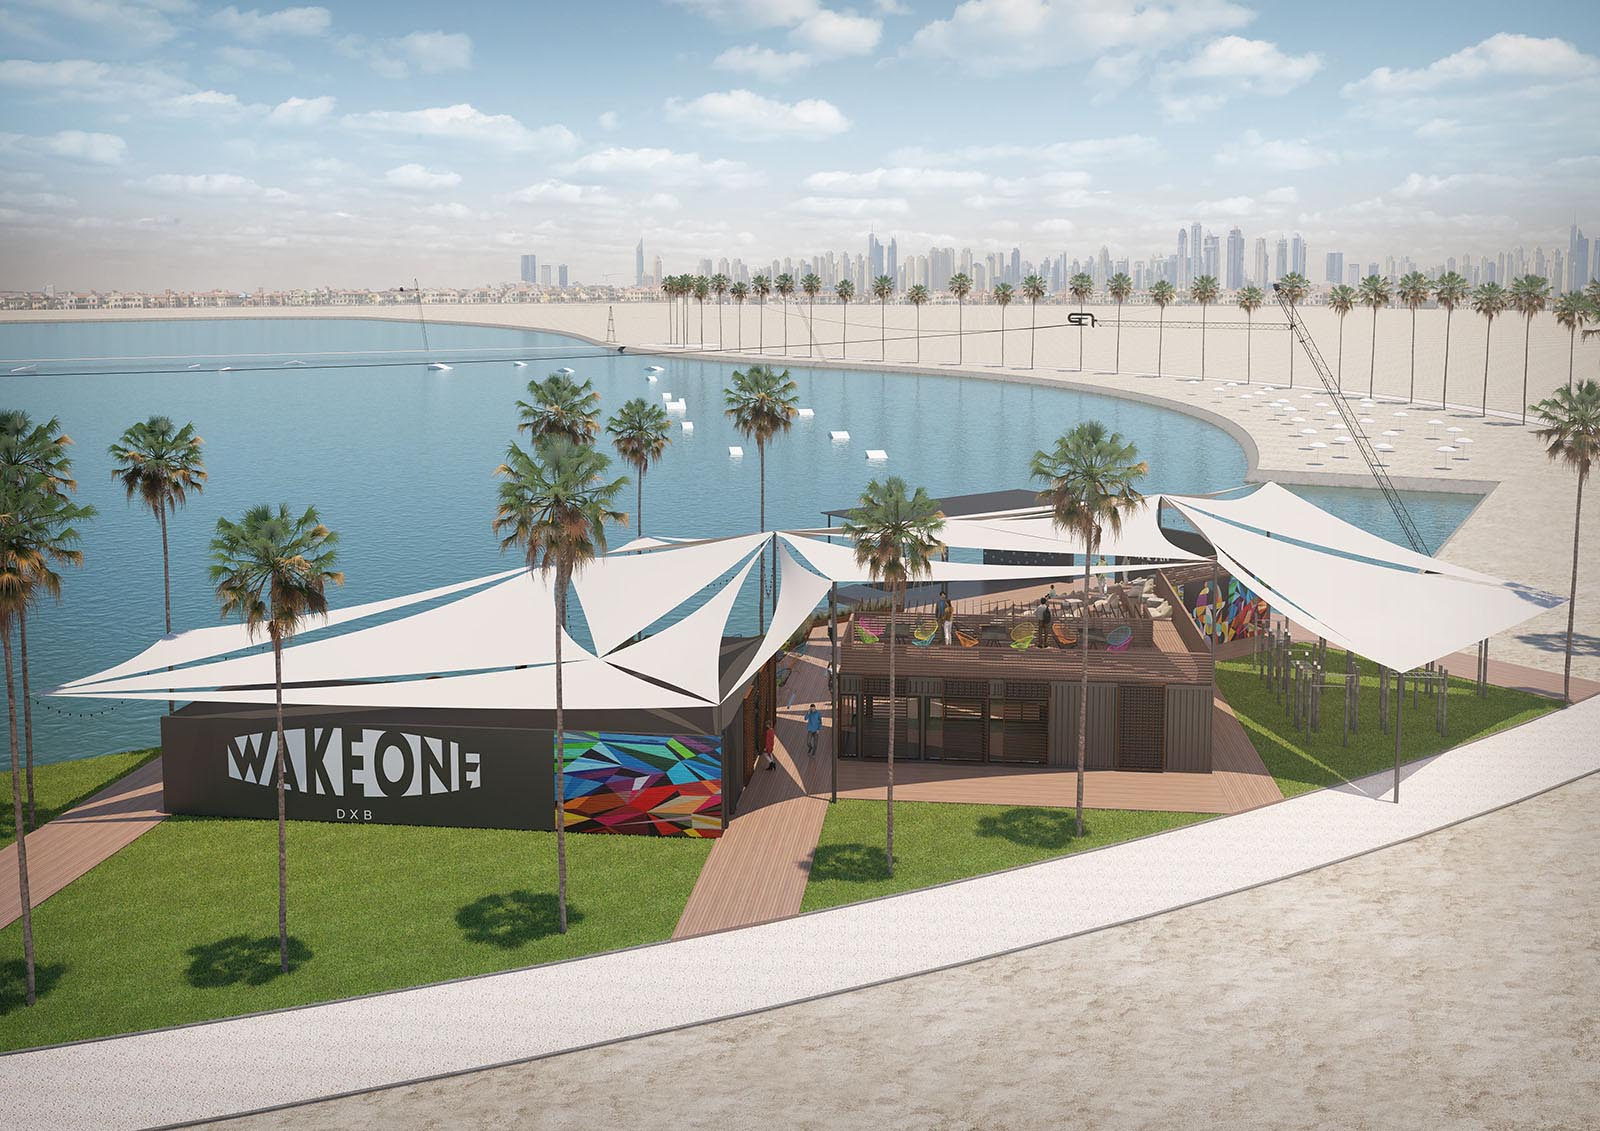 3D vizualization of a wake park, Dubai